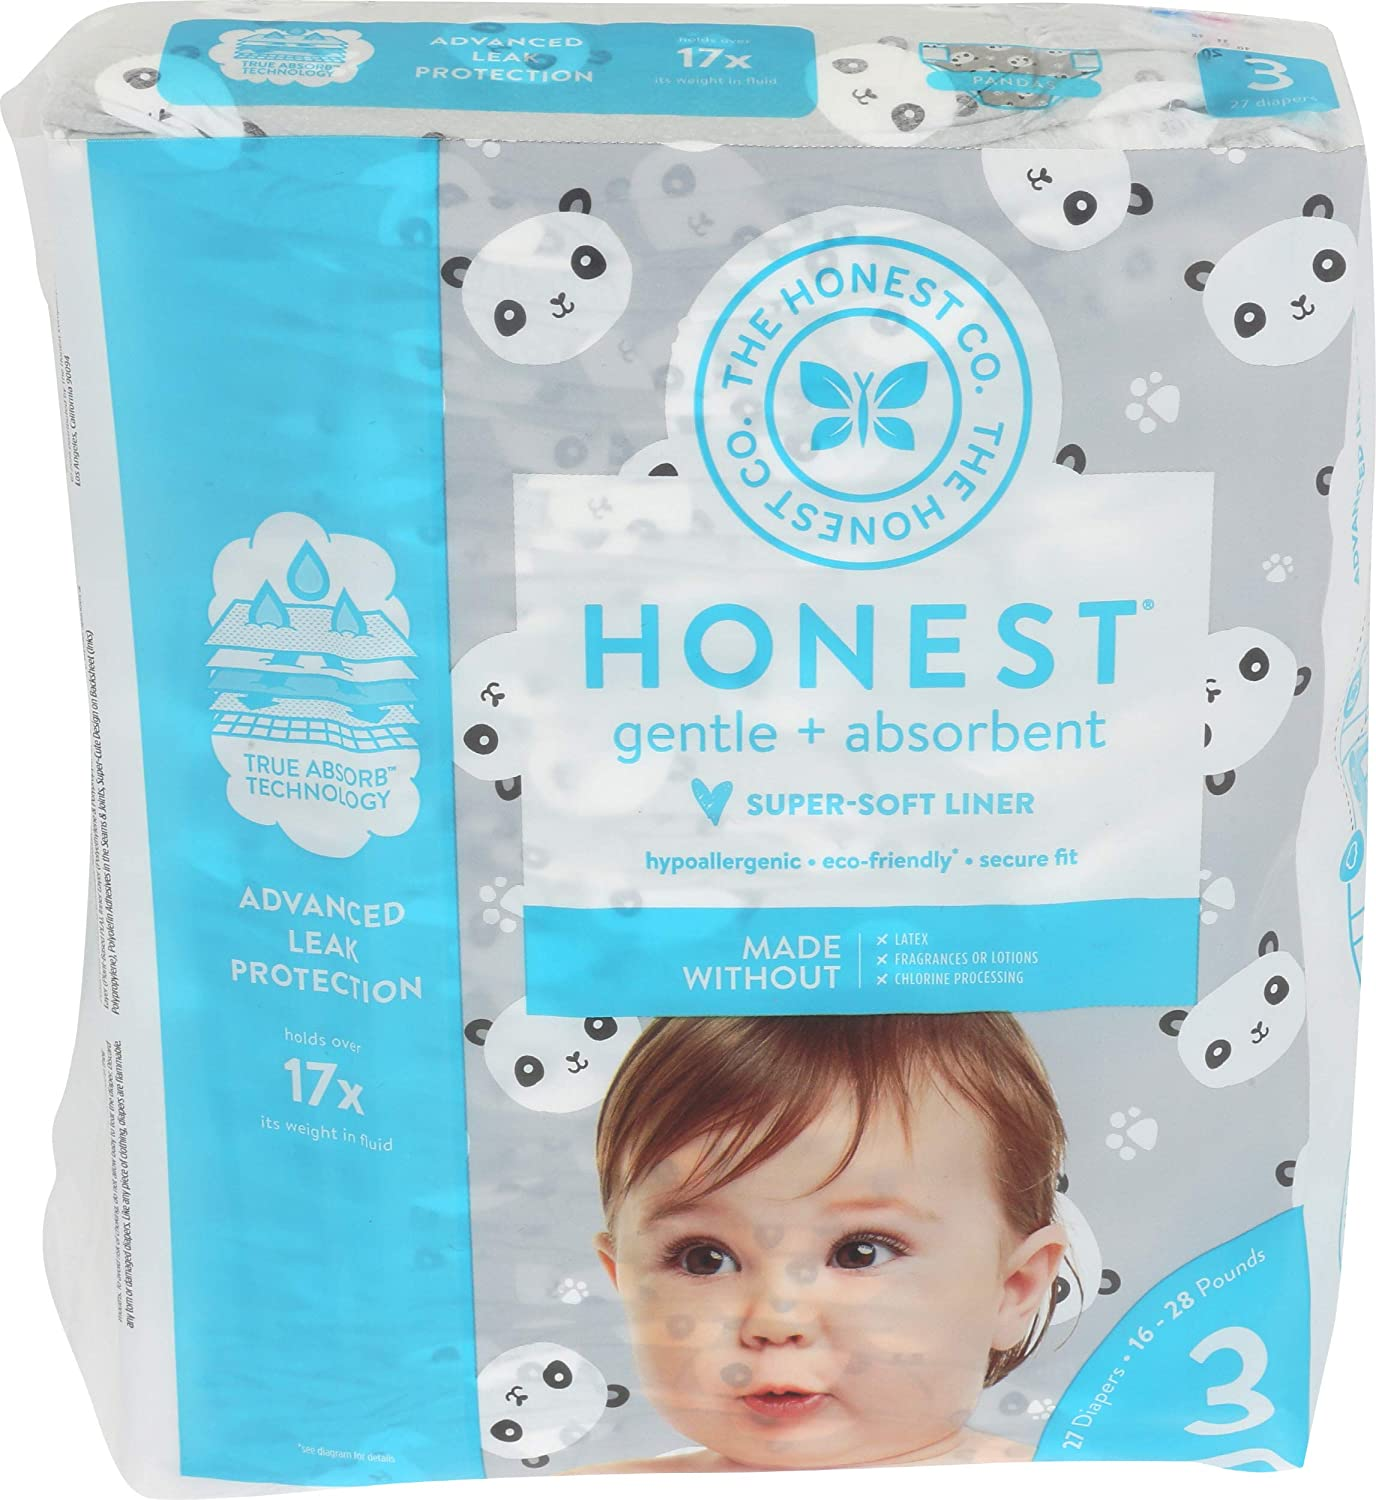 The Honest Company - Eco-Friendly and Premium Disposable Diapers - Pandas, Size 3 (16-28 lbs), 27 Count